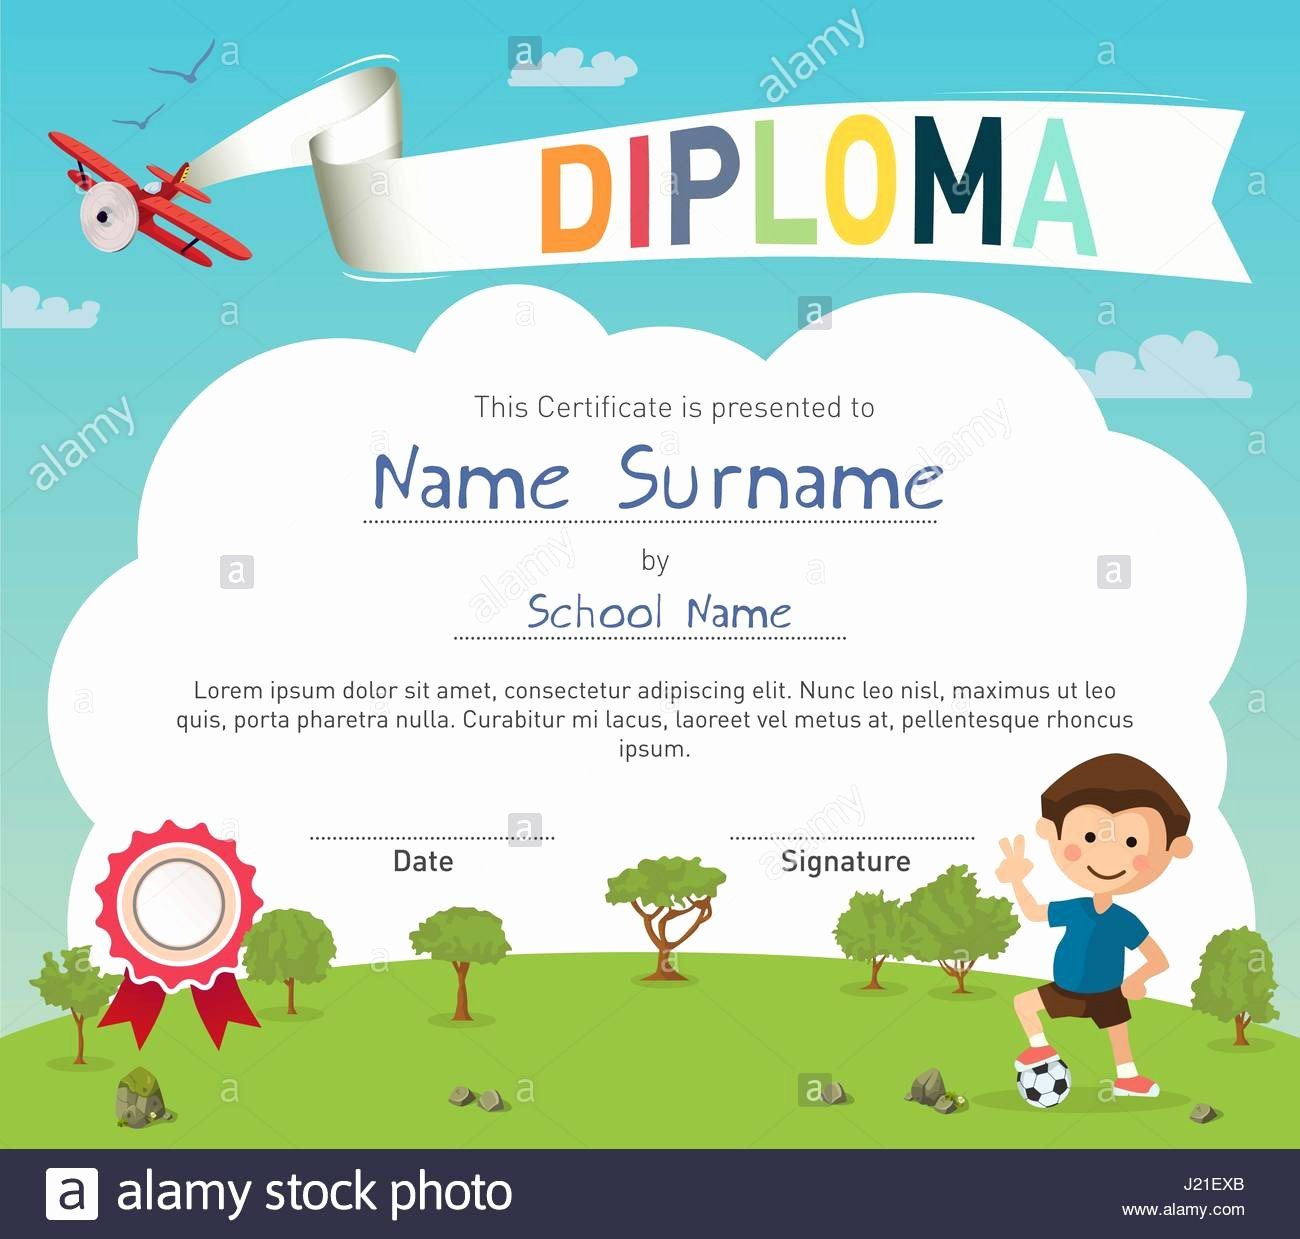 Summer Camp Certificate Templates Luxury Colorful Kids Summer Camp Diploma Certificate Template